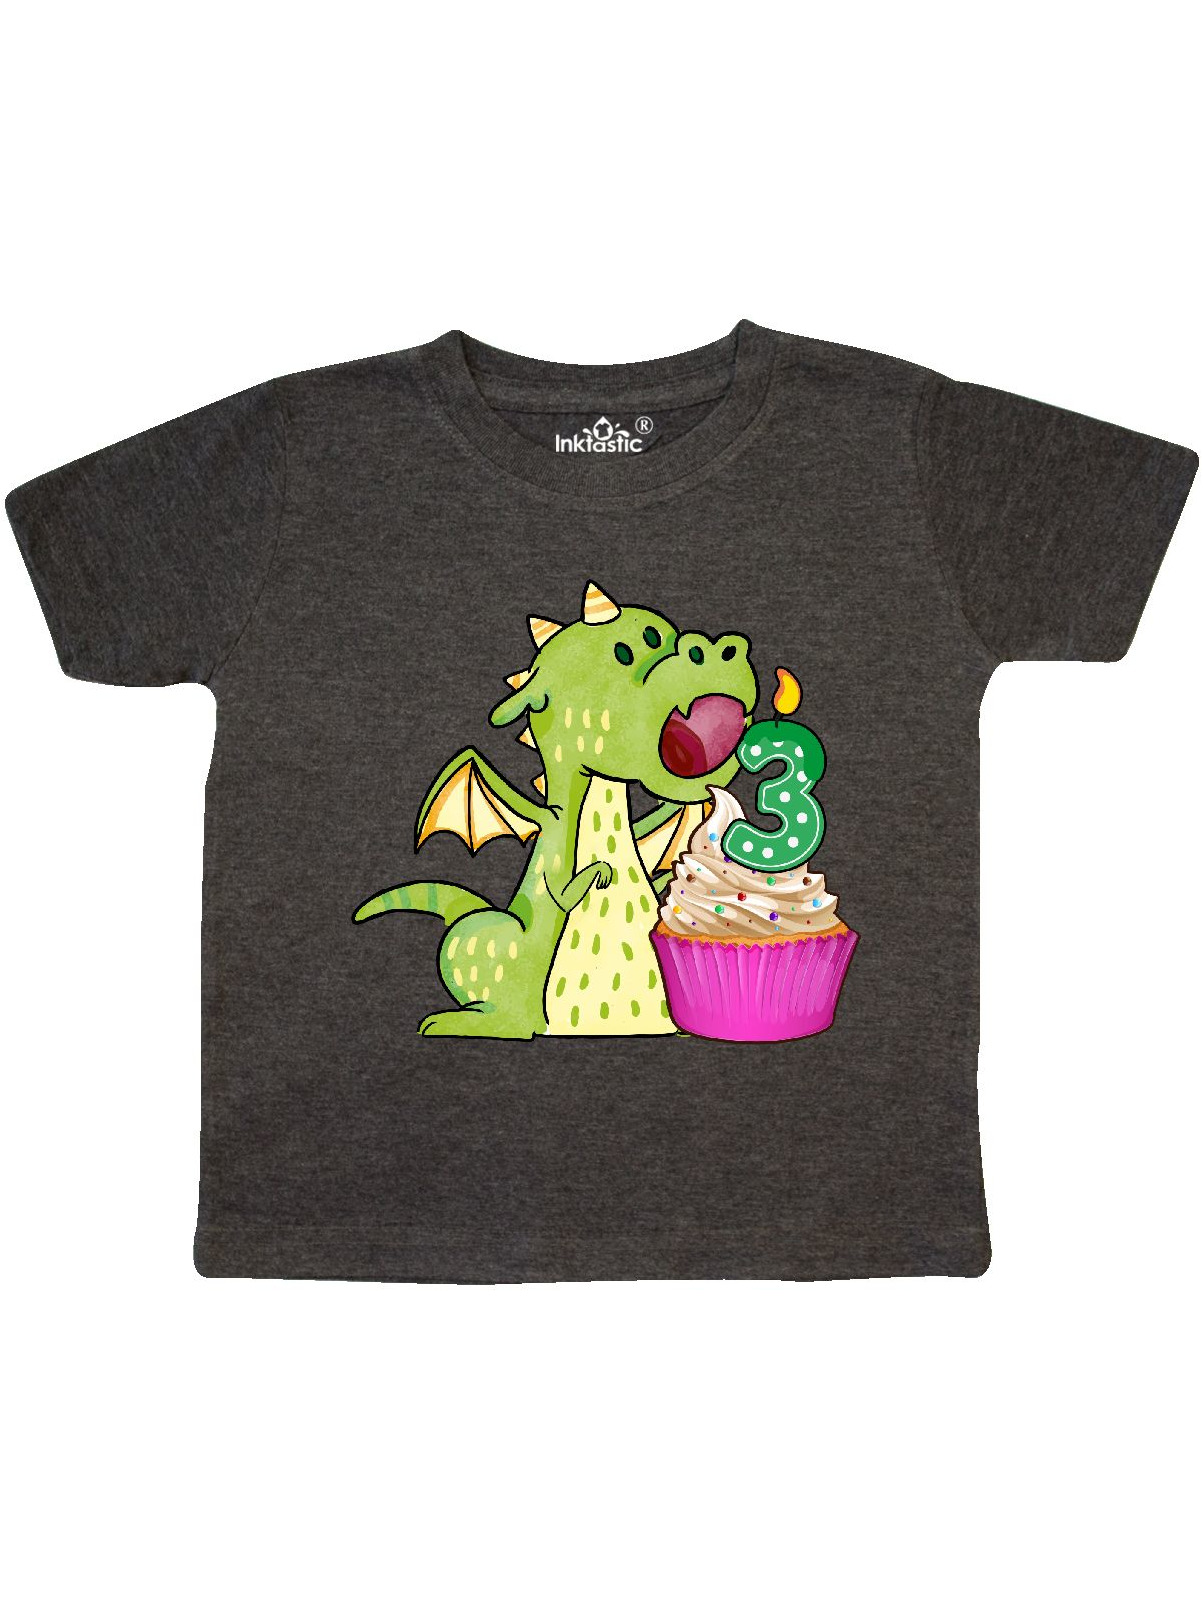 inktastic 3rd Birthday Outfit Girl Dragon Toddler T-Shirt